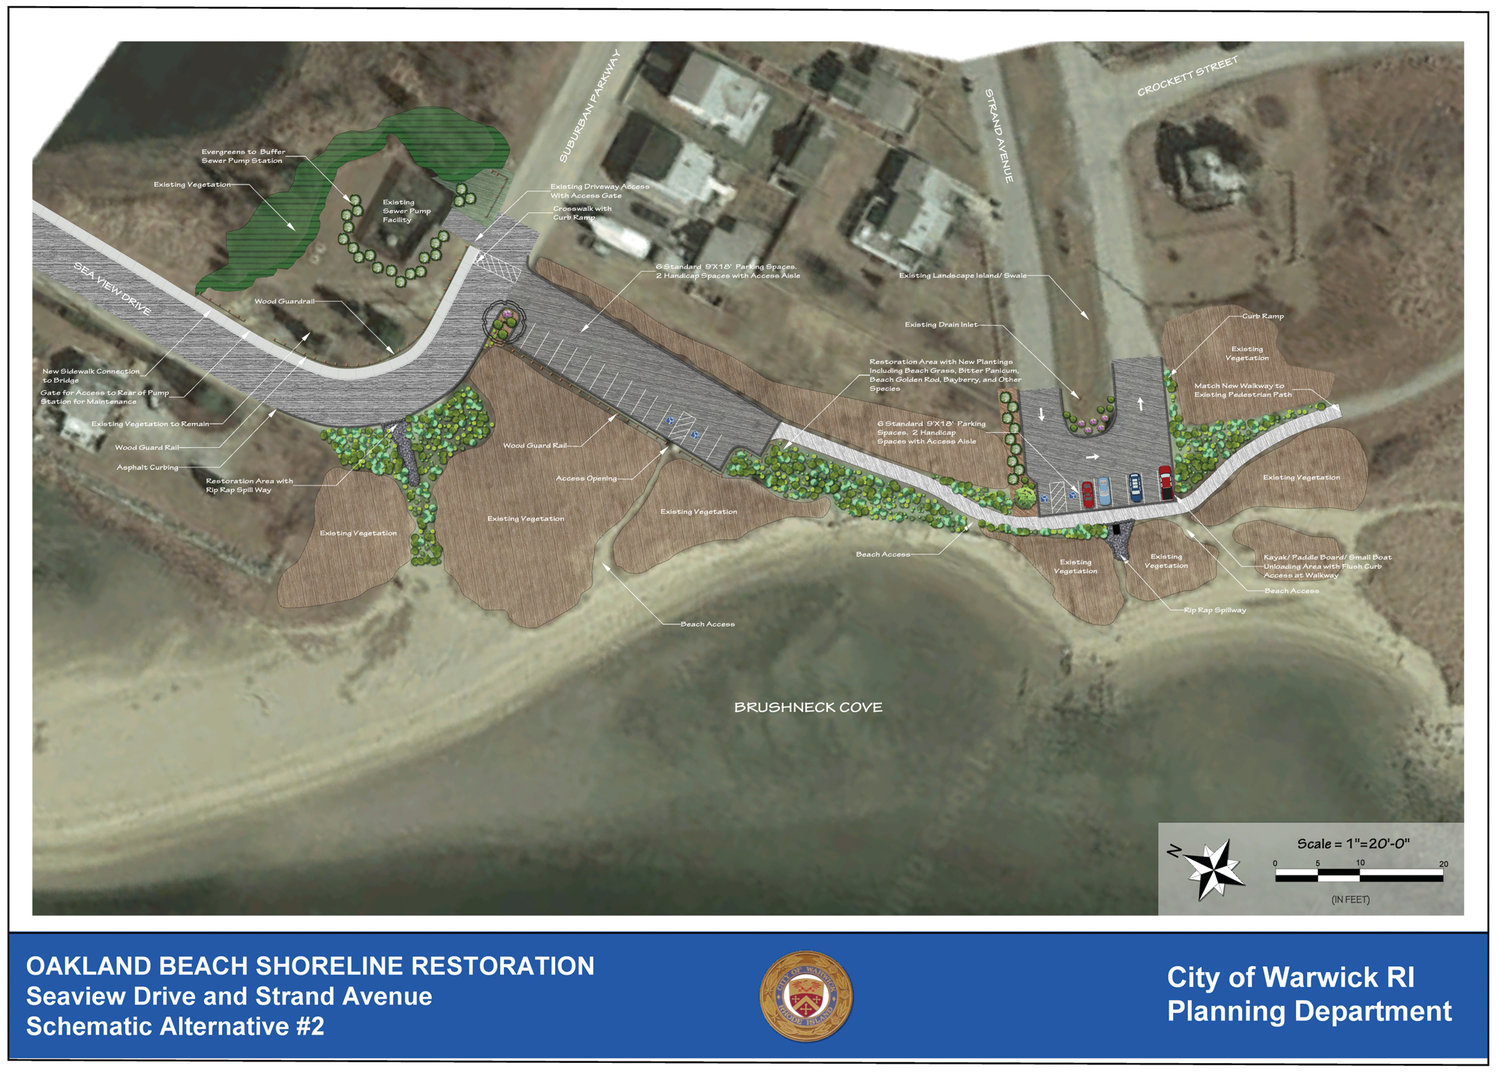 THE MODERATE PLAN: Under this scenario, the beach front parking lot would remain accessible from Suburban Parkway but closed to vehicles from Strand. This and other plans will be discussed at an Aug. 8 meeting at 7 p.m. at the Oakland Beach branch of the Boys & Girls Clubs.